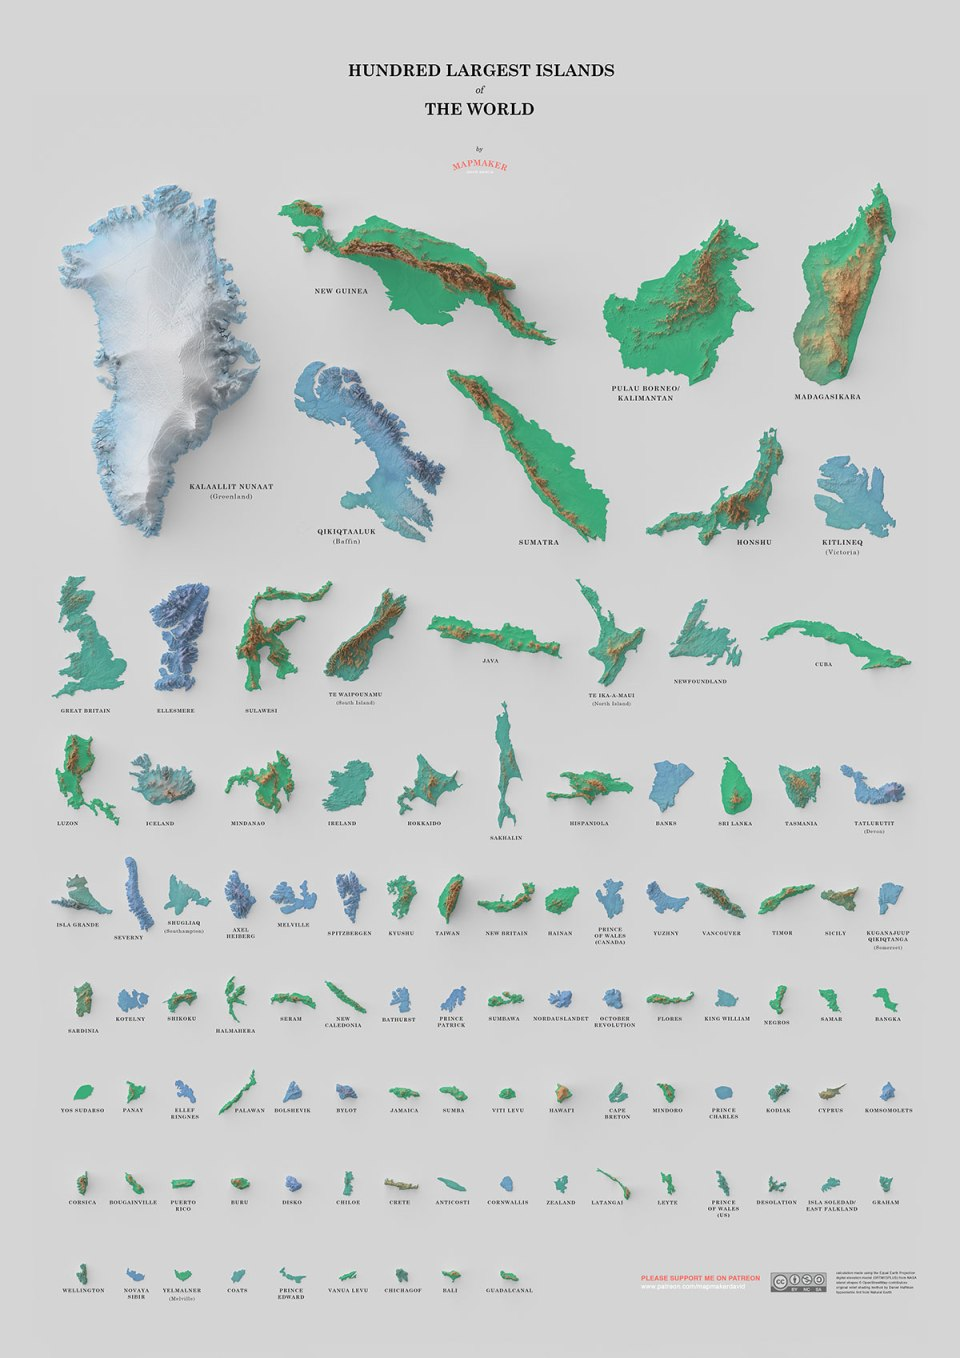 Biggest Islands in the World